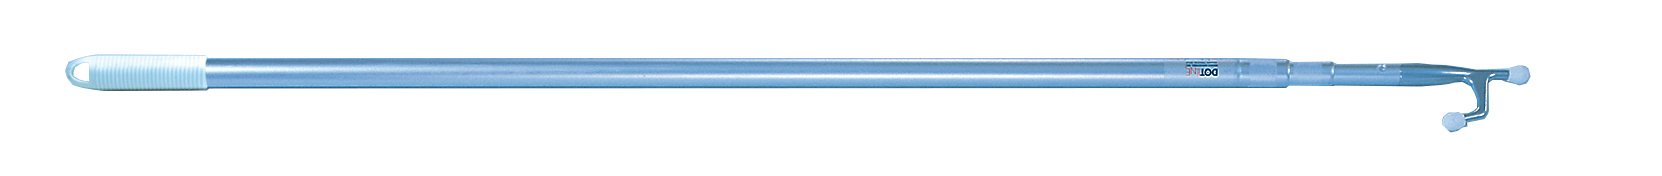 Dotl Boat Hook Tele 4'-12' Length: 56'' - 144''